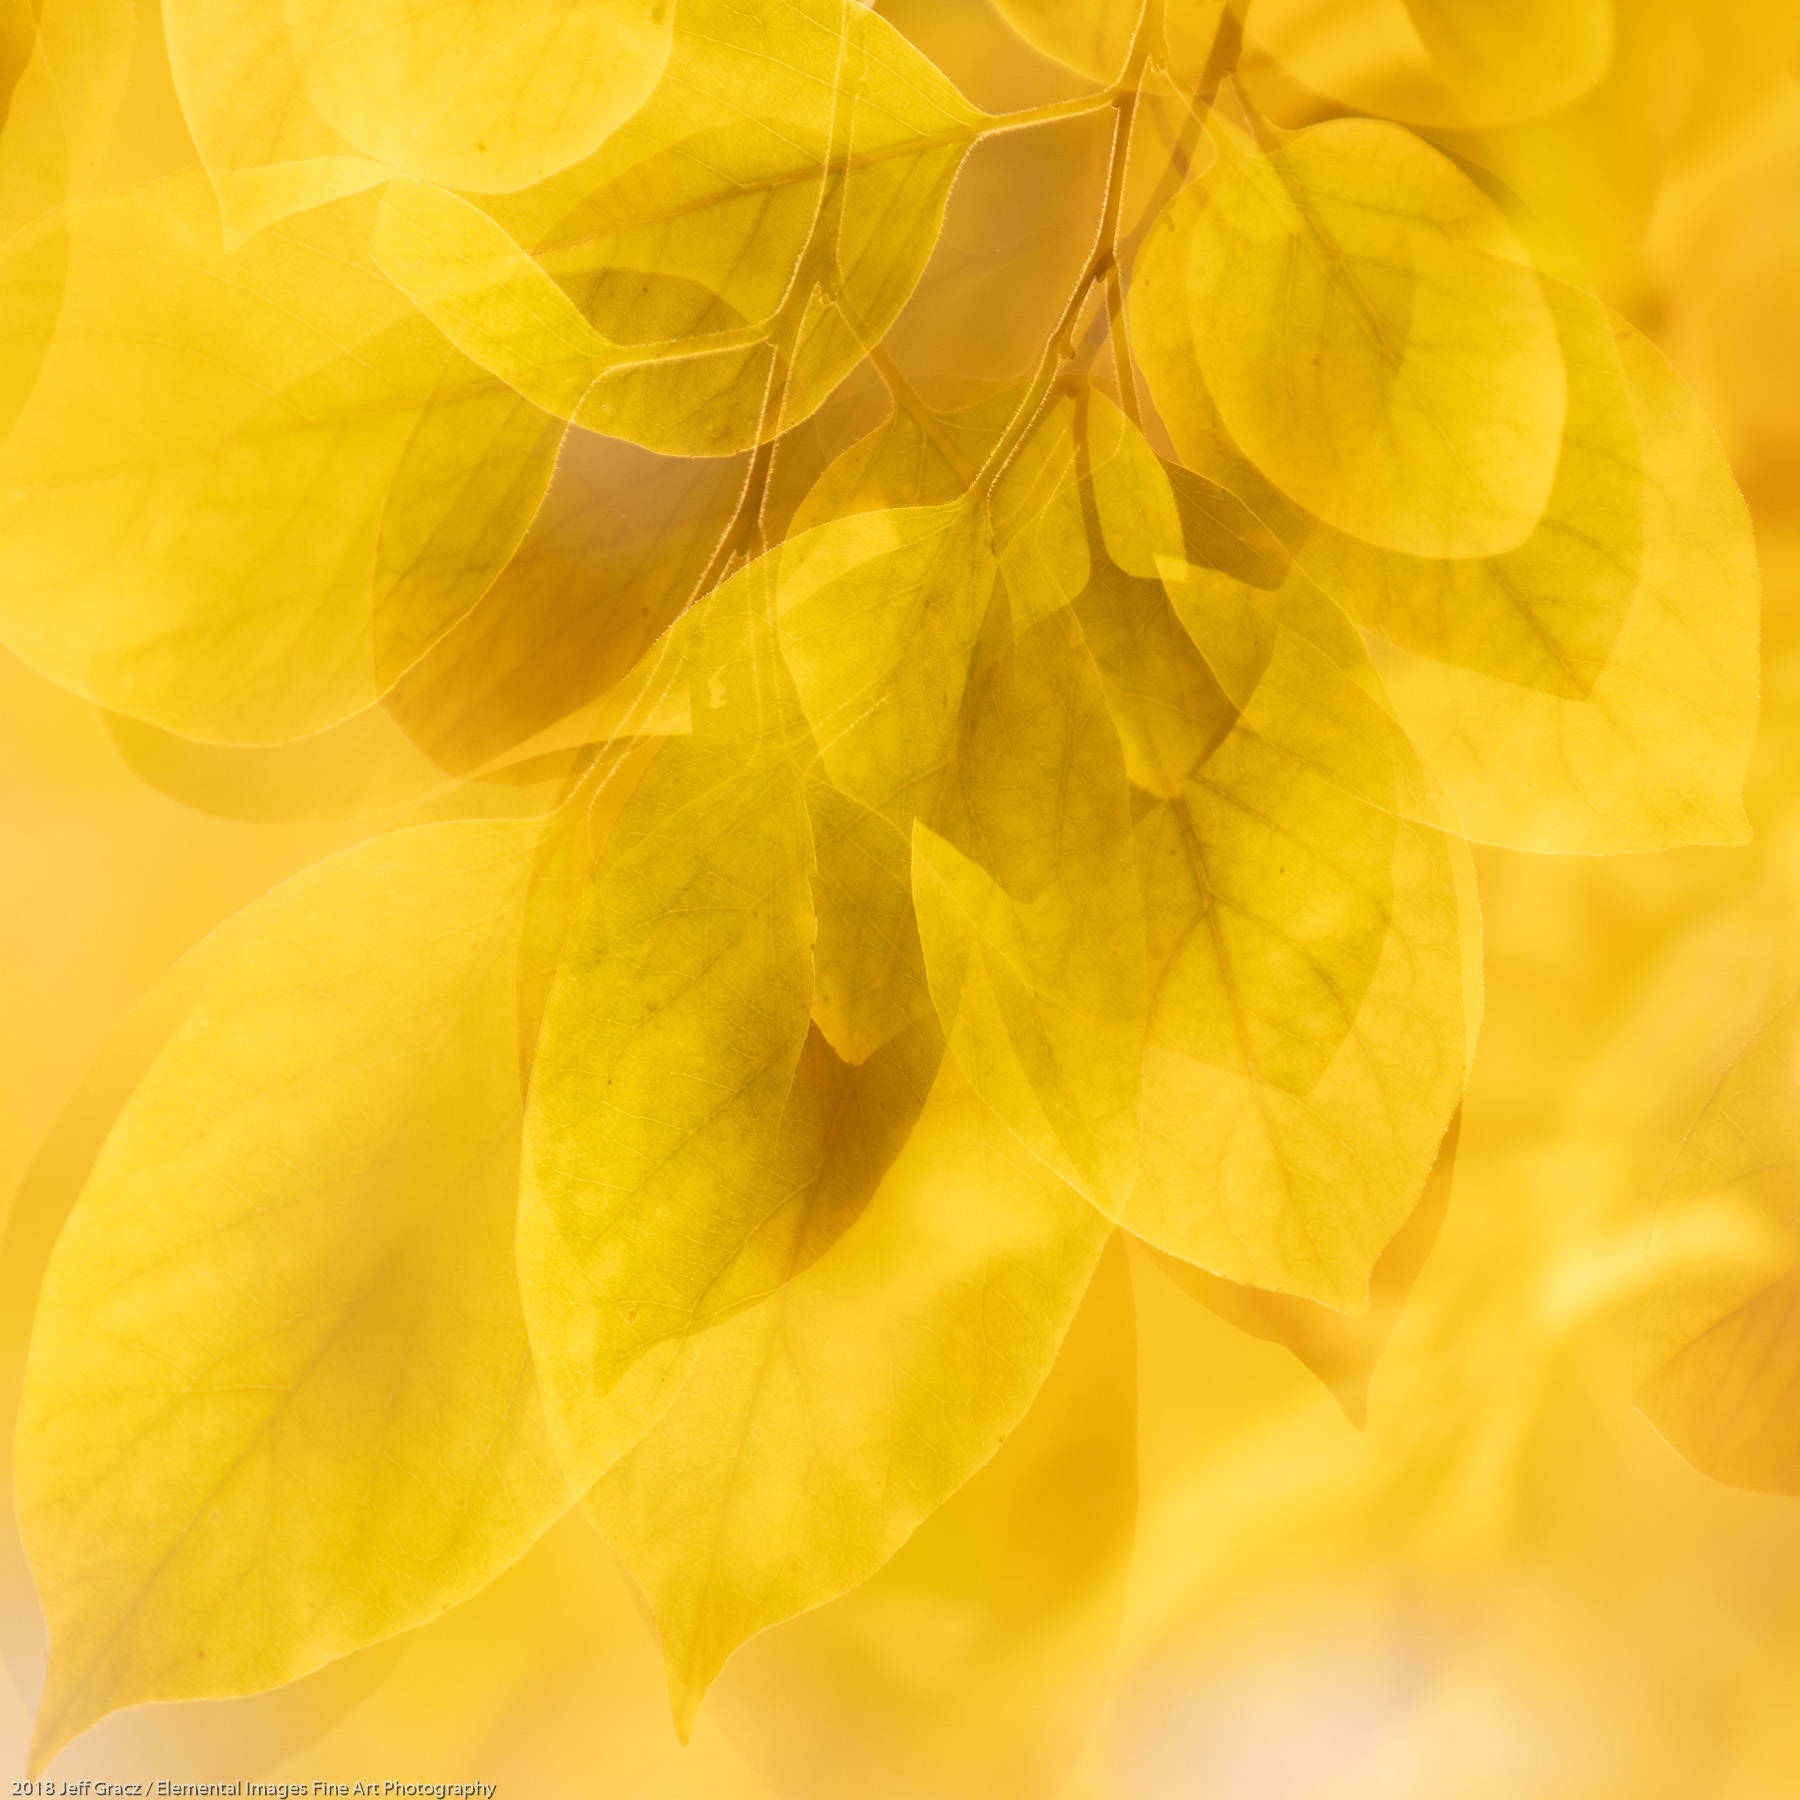 Leaves #180   Portland   OR   USA - © 2018 Jeff Gracz / Elemental Images Fine Art Photography - All Rights Reserved Worldwide